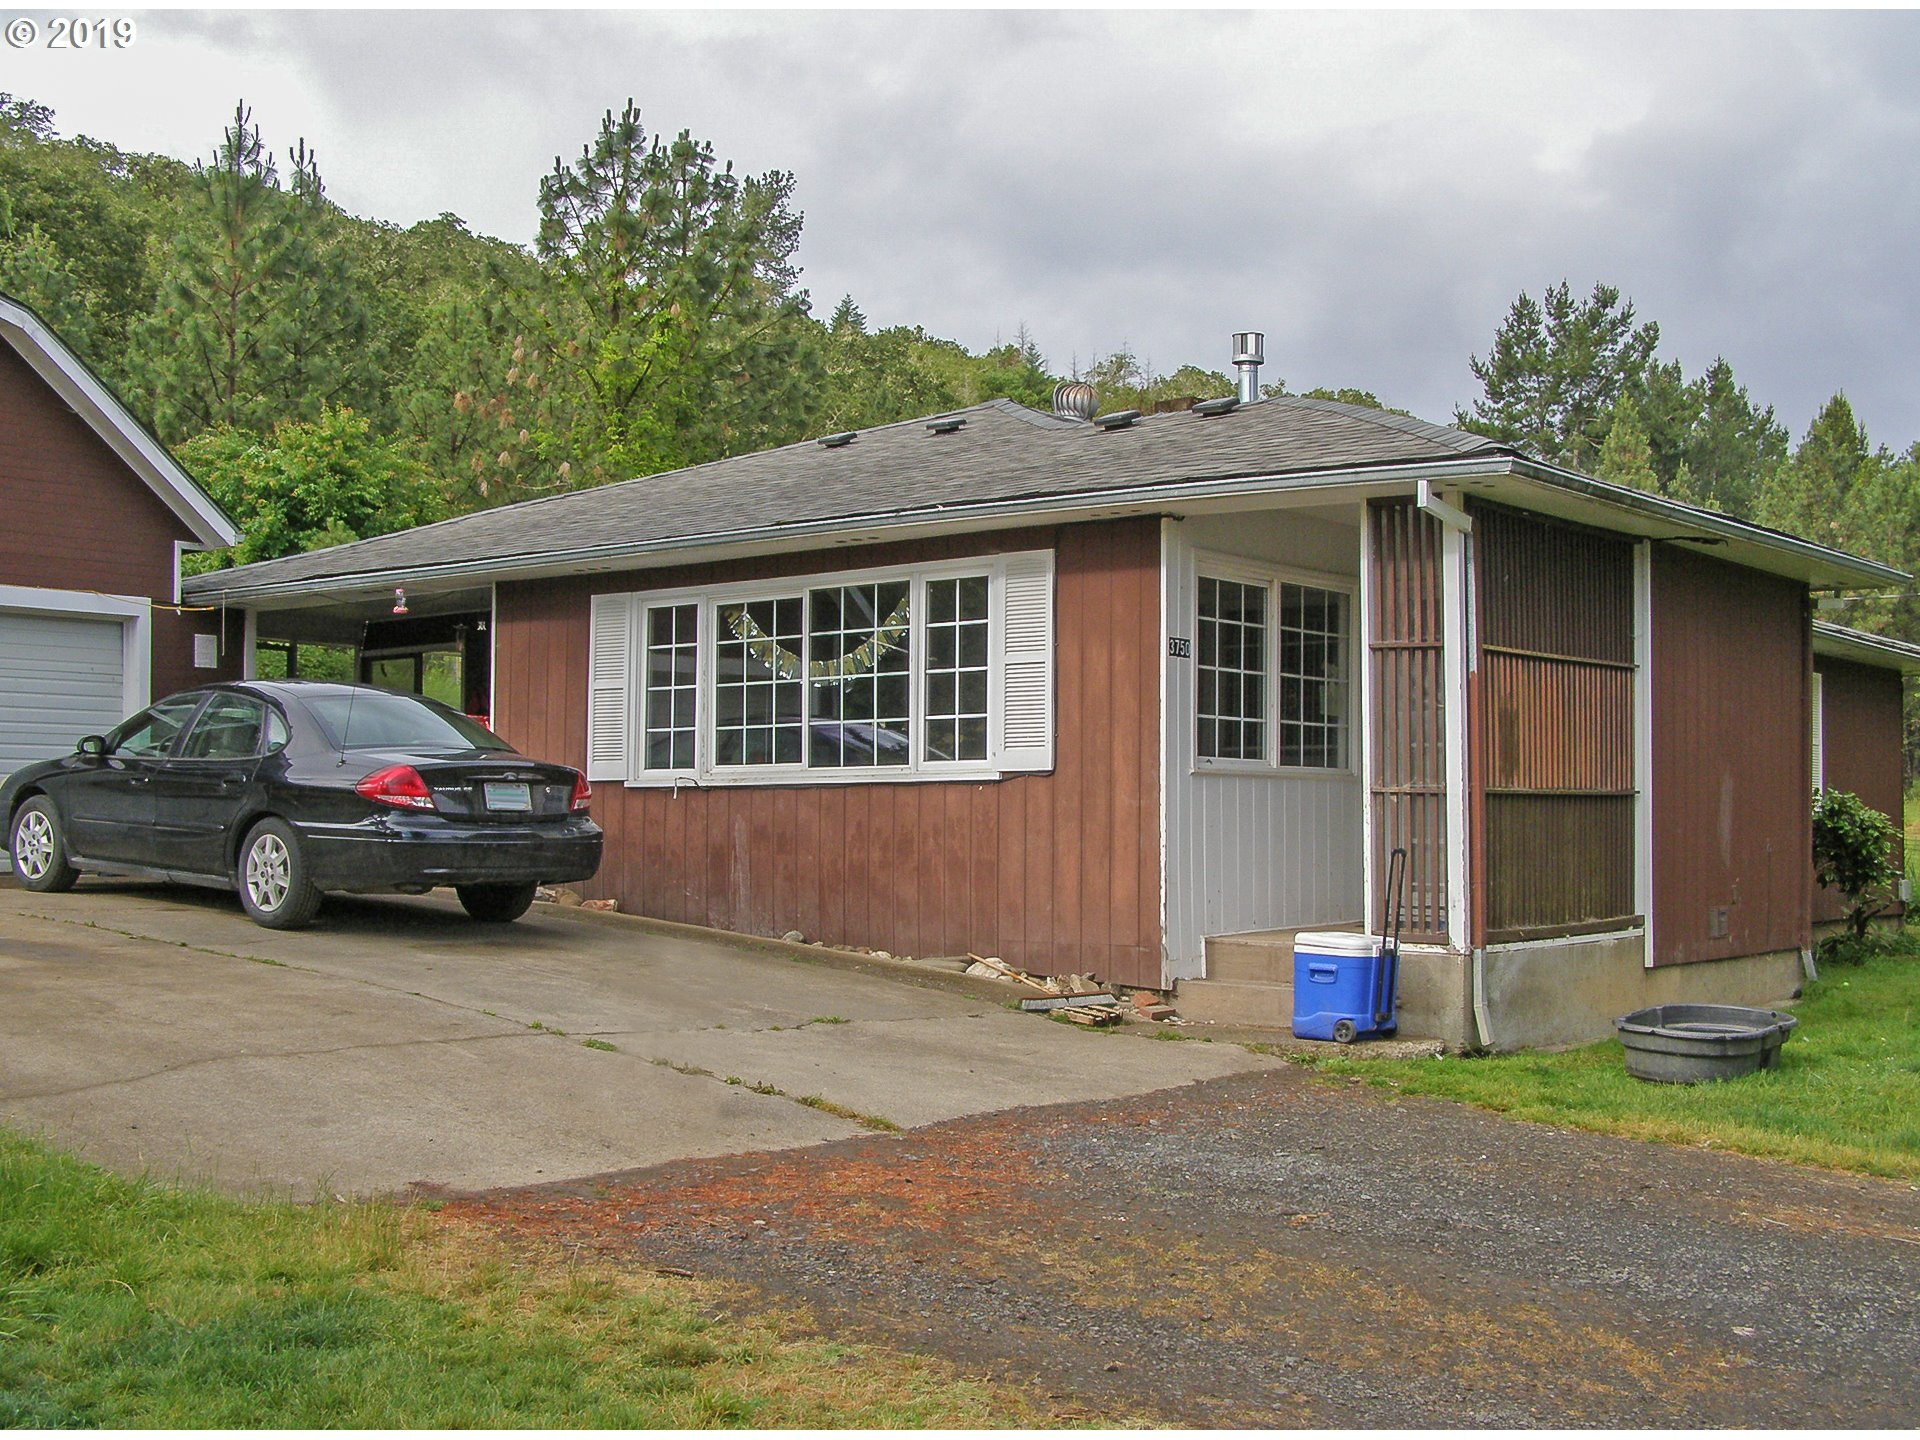 Roseburg, OR 3 Bedroom Home For Sale